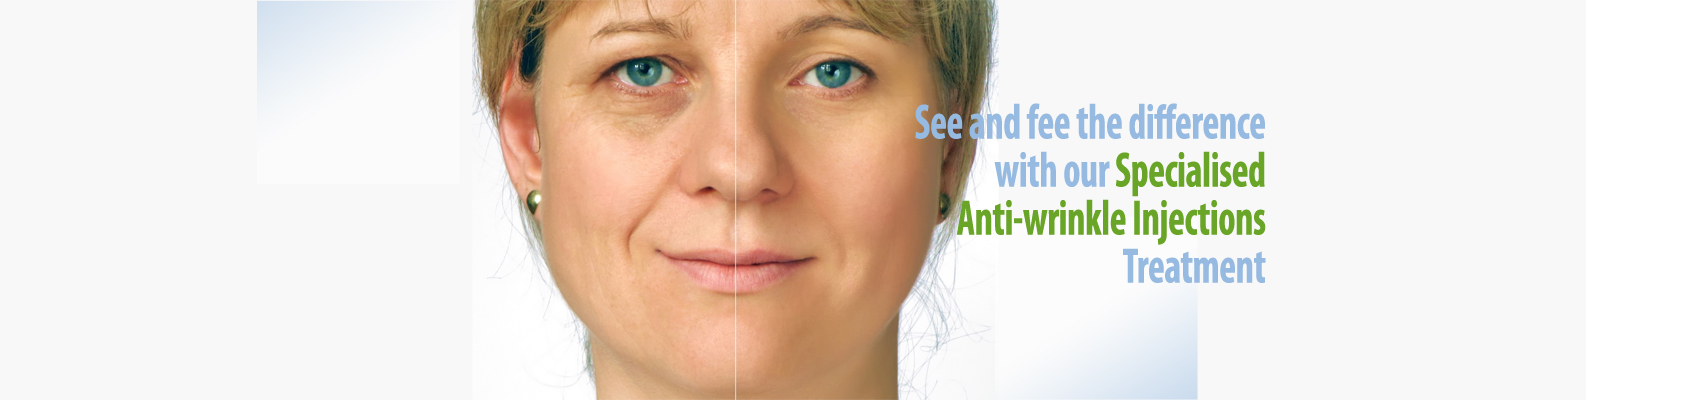 Feel and See the Difference Specialised Anti-wrinkle Injections Treatment at Melbourne Anti-Wrinkle Injections